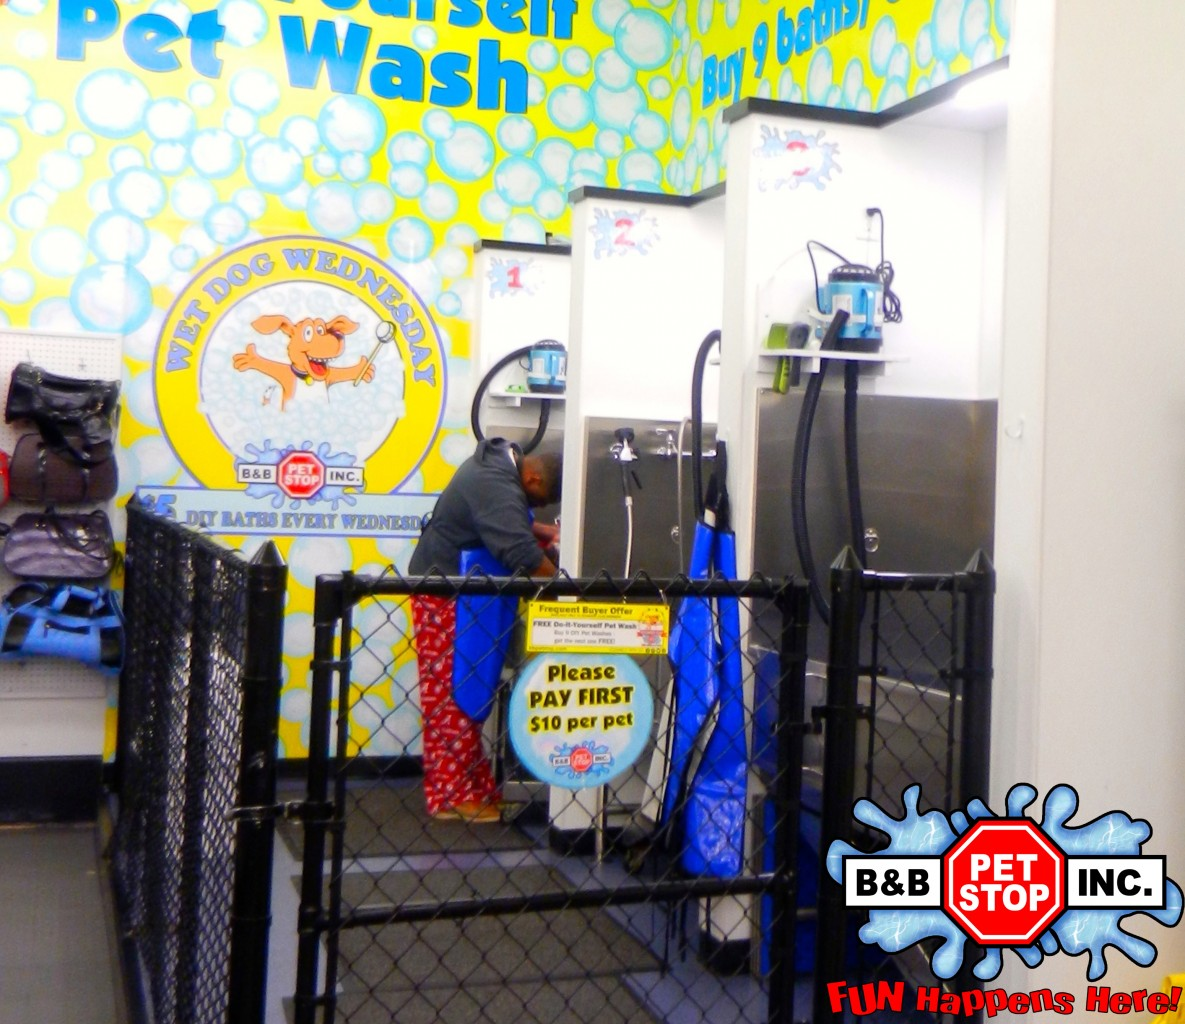 Dogs cats bb pet stop wilson the great dane do it yourself pet wash solutioingenieria Images